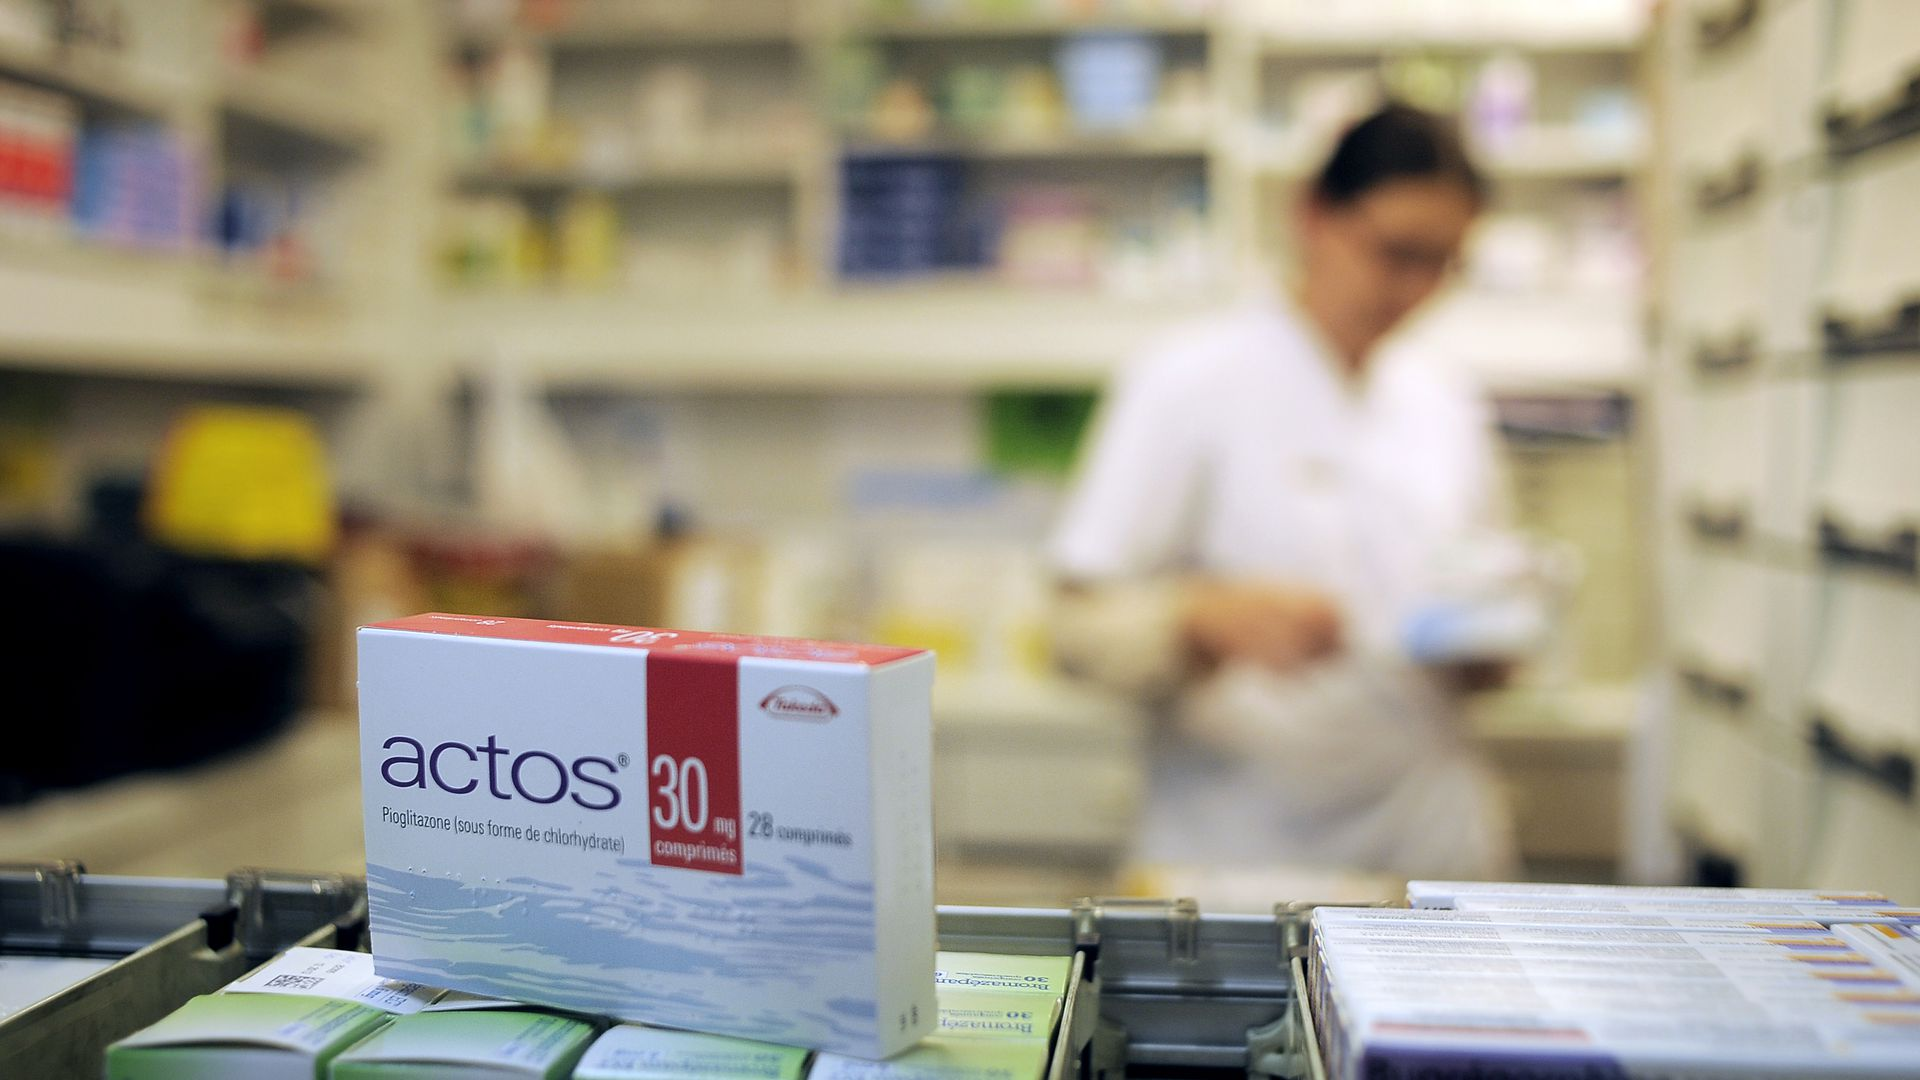 A package of Actos, a drug made by Takeda.